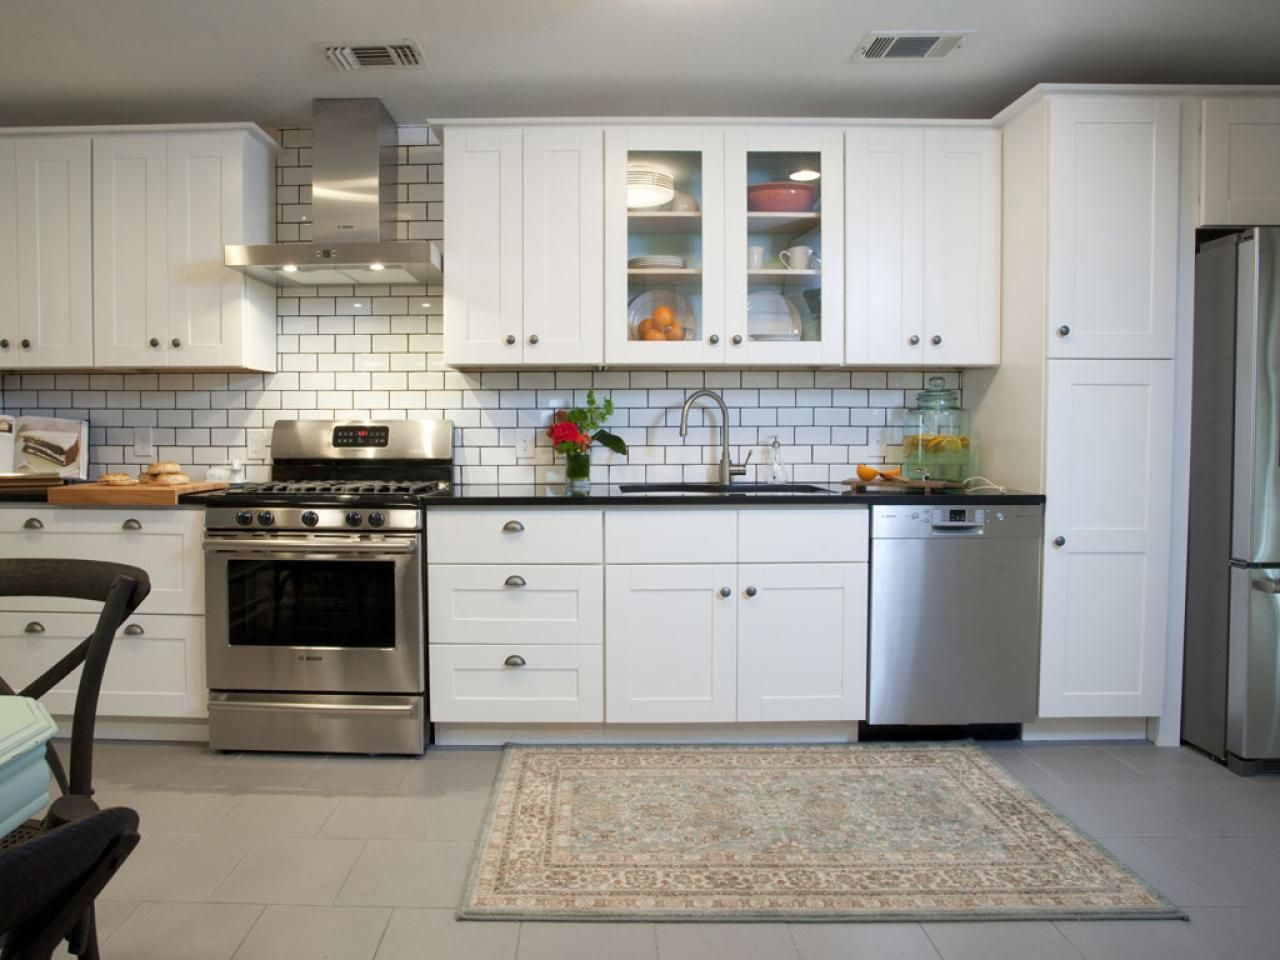 Kitchen With Subway Tile Backsplash Concept Room Transformations From The Property Brothers  Property .